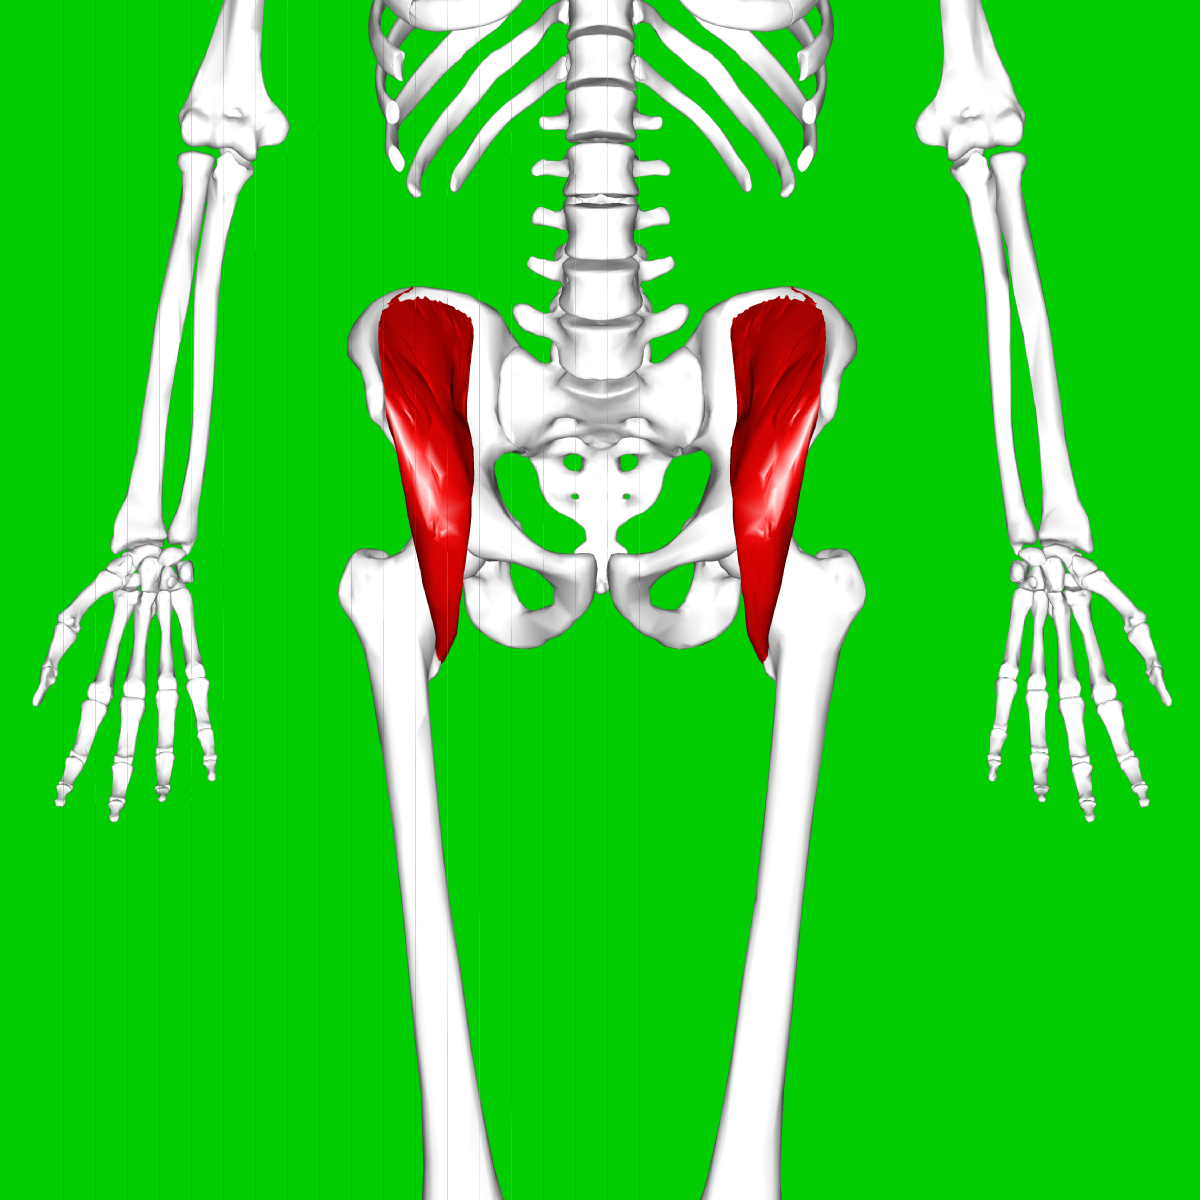 Corps Humain Os Zygomatique 15051 furthermore Stock Image Muscle Structure Supine Woman Image17701071 moreover 53 Types Of Teeth And Dental Decay besides Longest Muscle Of Human Body in addition How To Get Beautiful Dancers Feet 1006759. on 1 bone structure and position